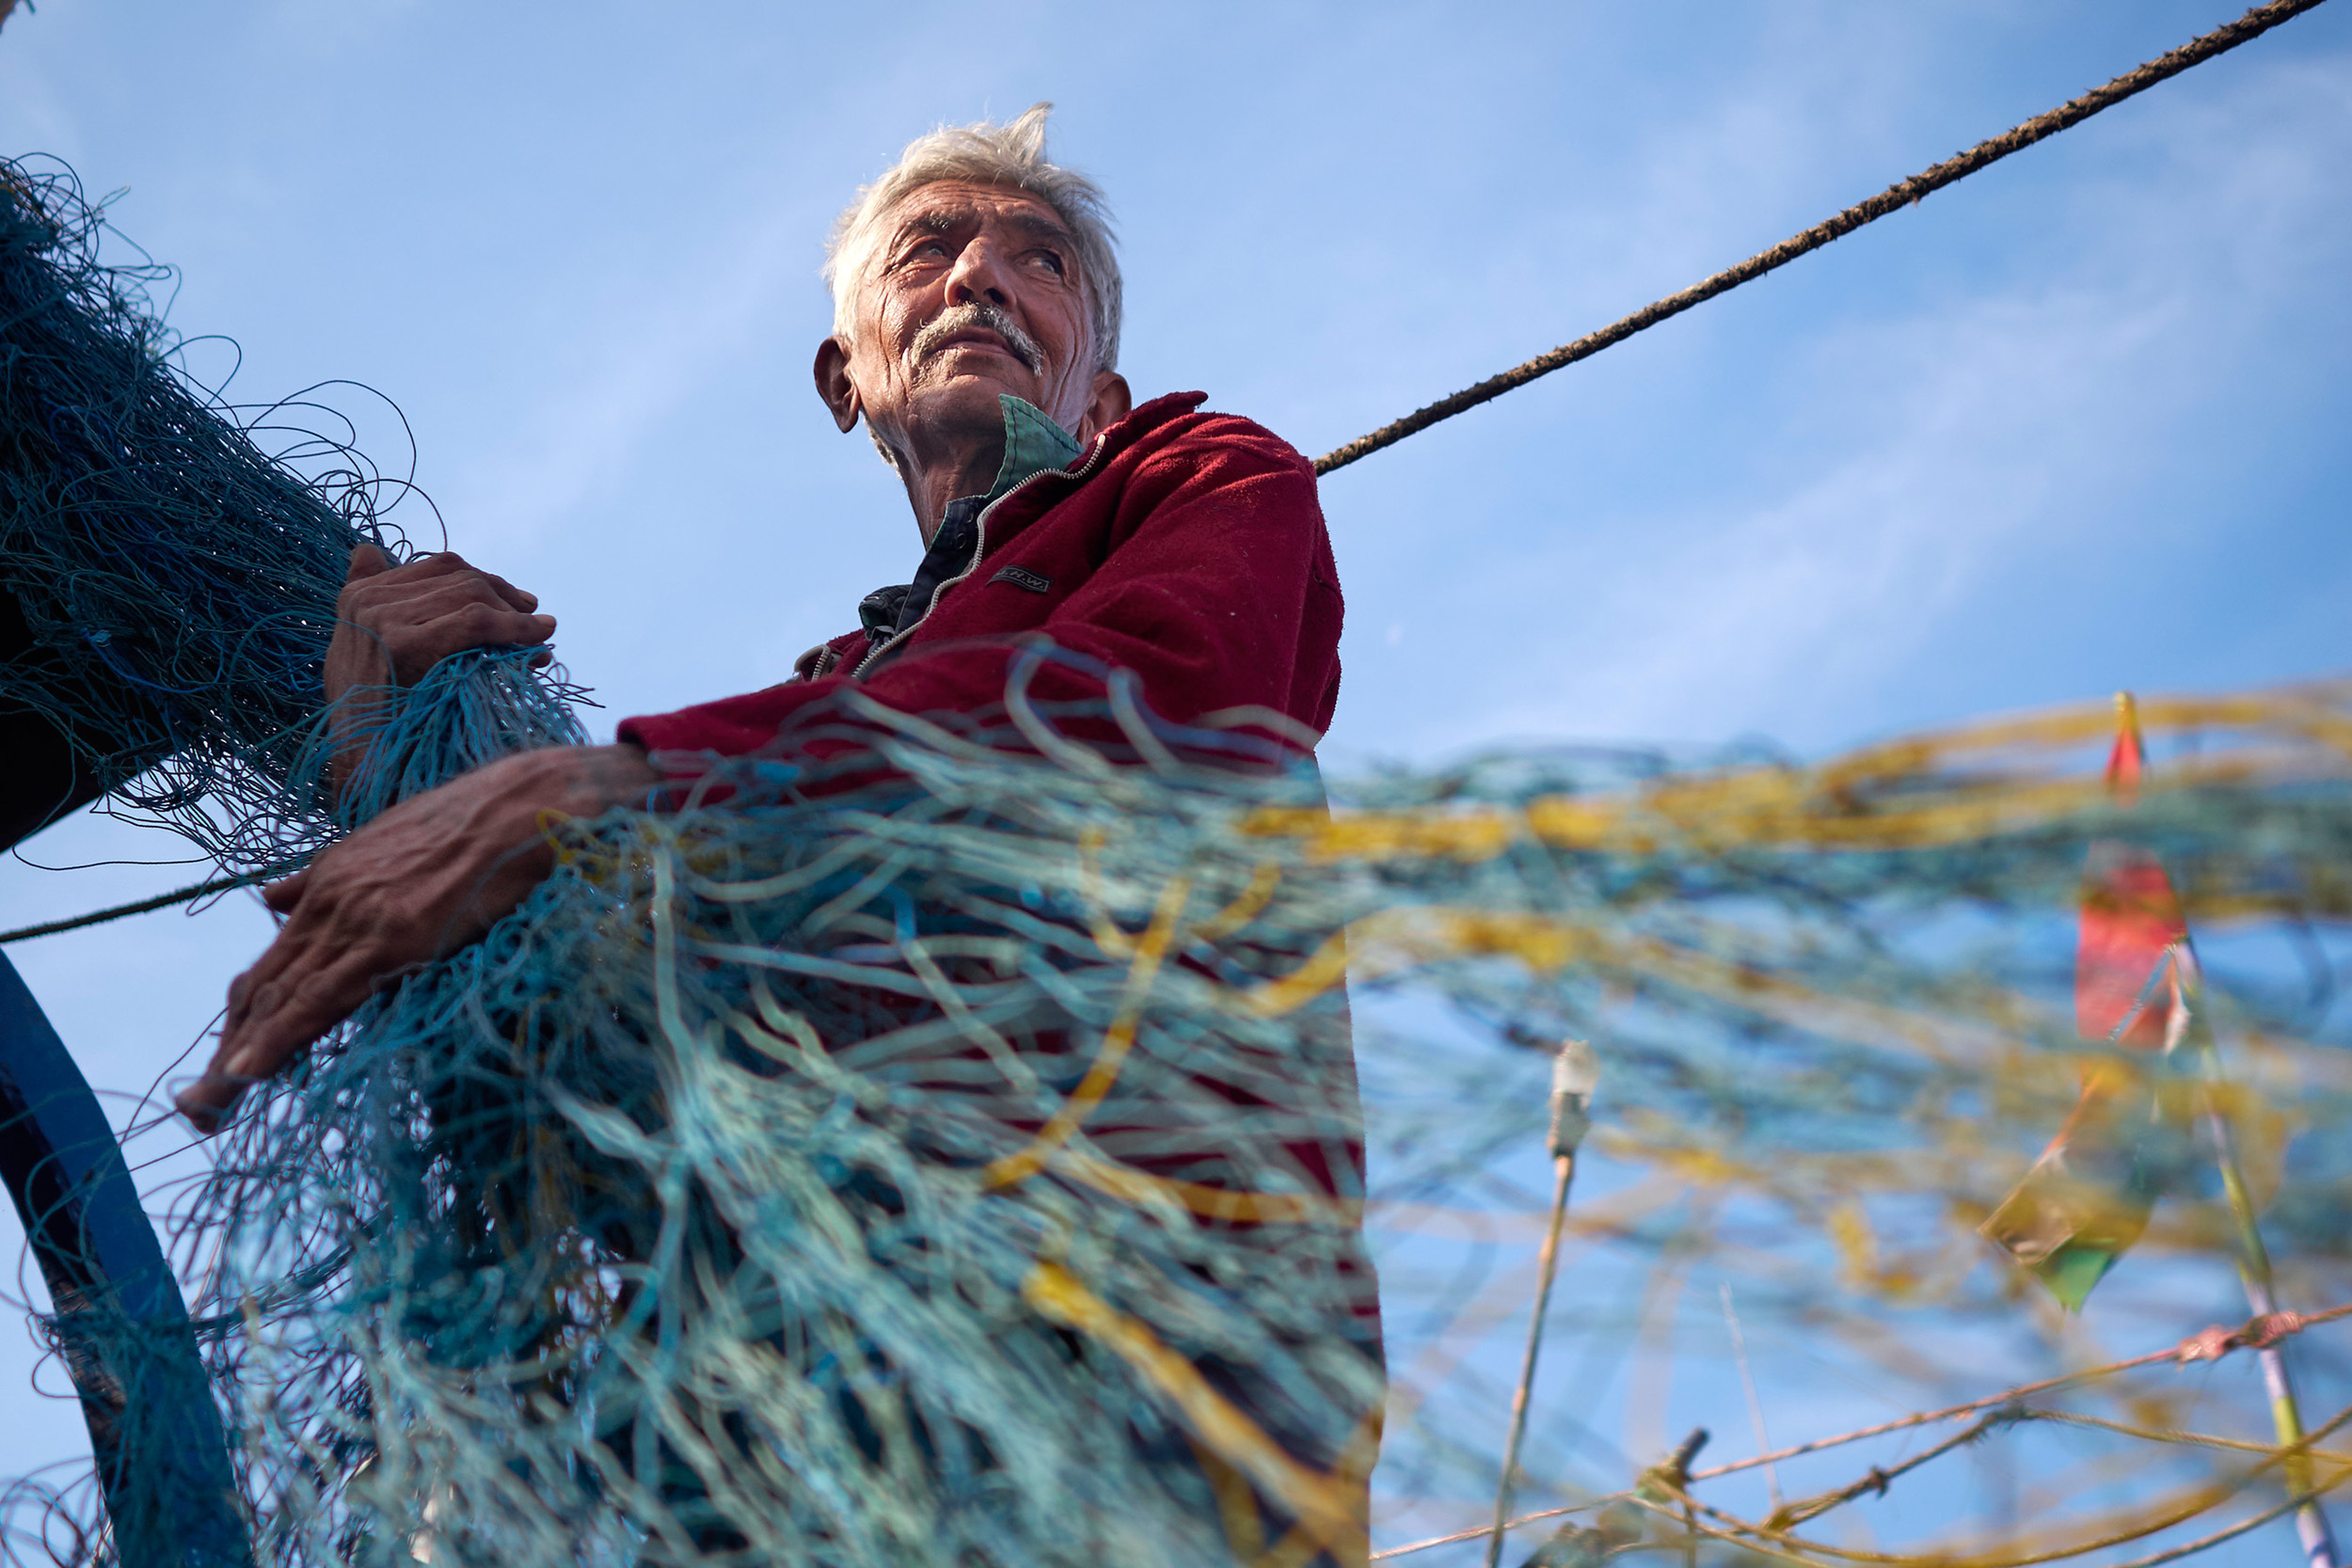 Fisherman packing up the net